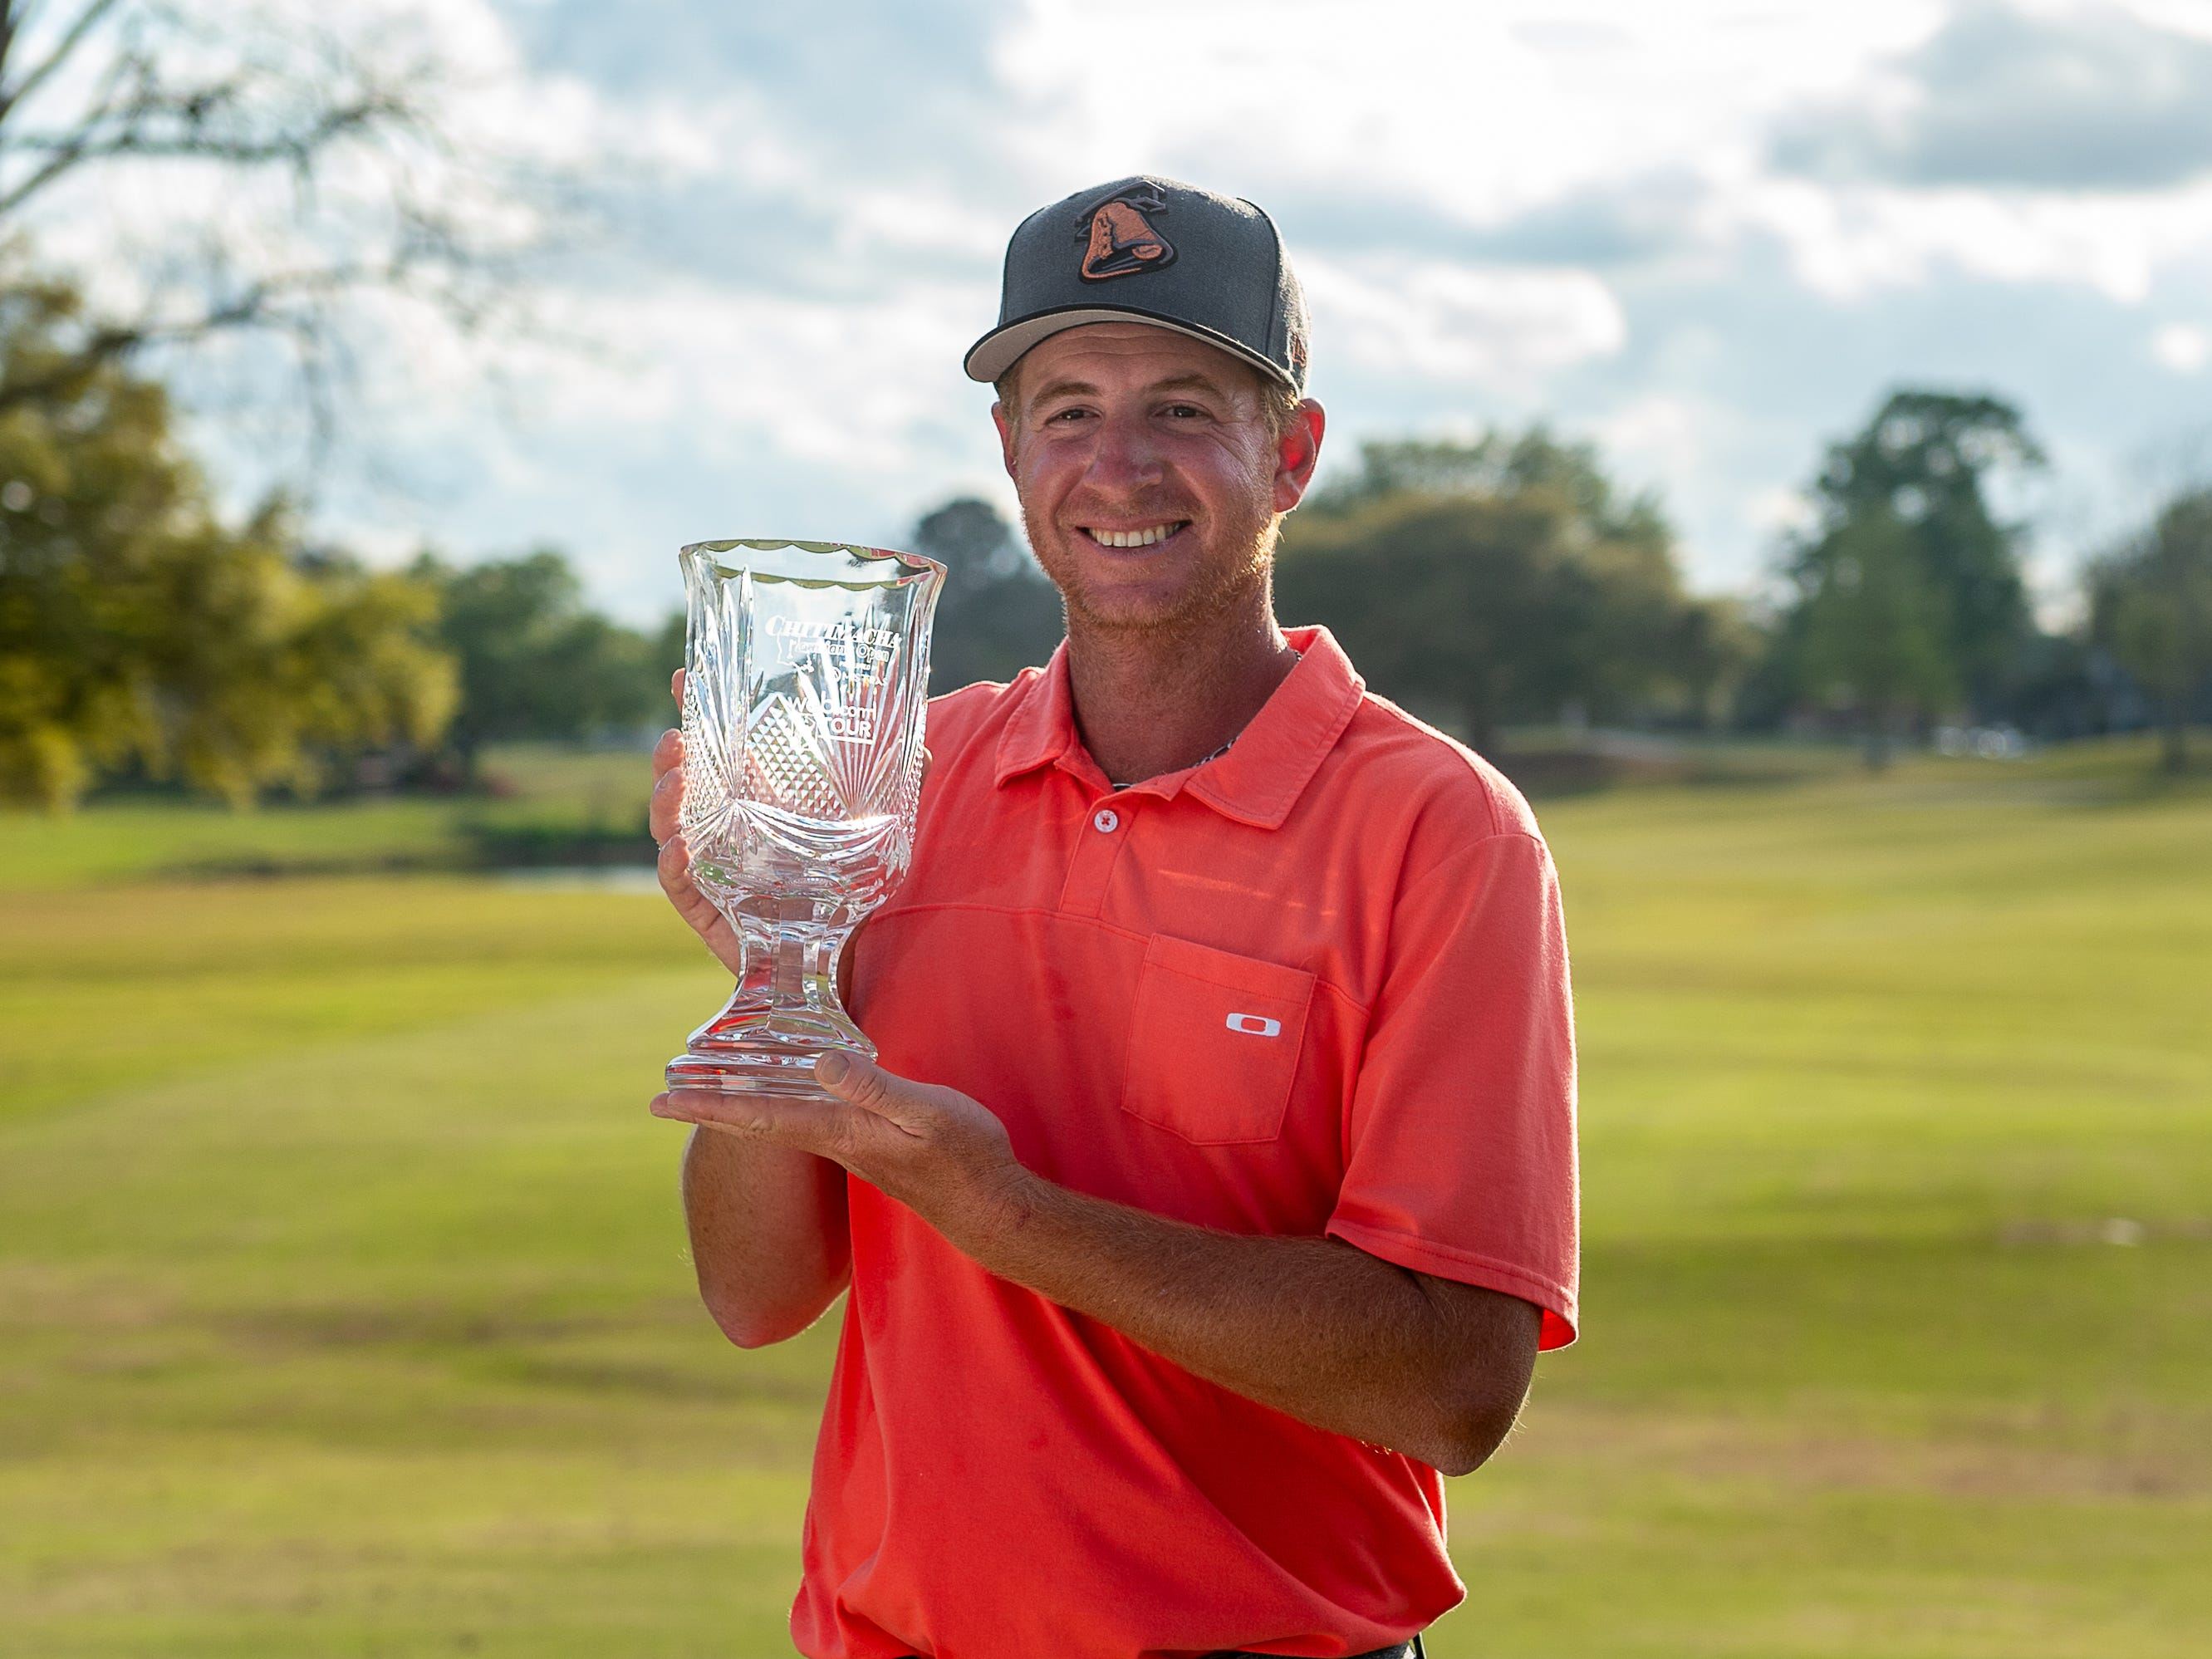 Vince Cavello wins the 2019 Chitimacha Louisiana Open presented by Mistras at Le Triomphe. Sunday, March 24, 2019.